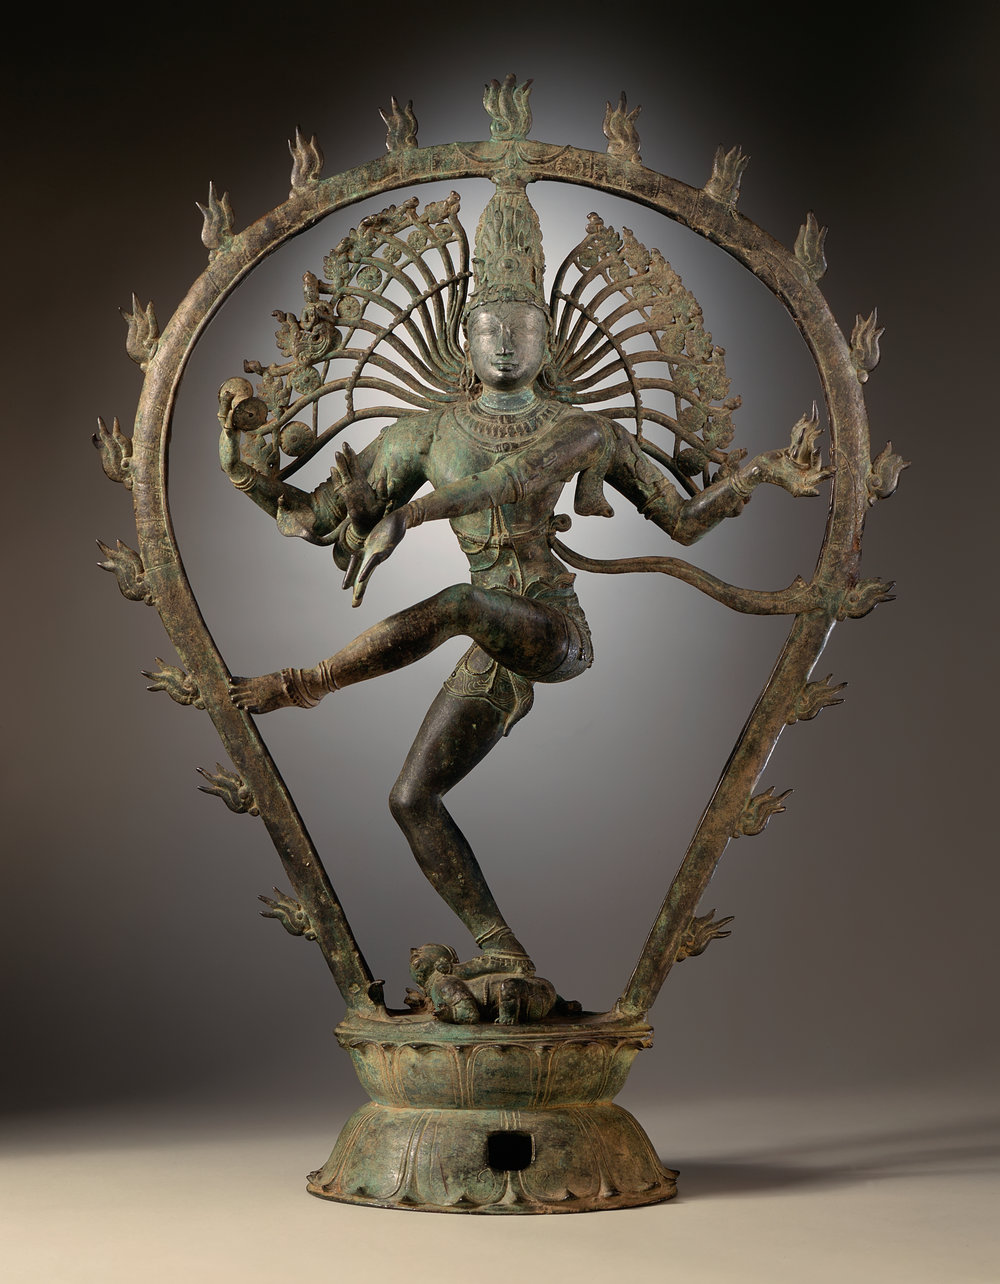 By Shiva_as_the_Lord_of_Dance_LACMA.jpg, photographed by the LACMA.derivative work: Julia\talk, Public Domain, https://commons.wikimedia.org/w/index.php?curid=14771931